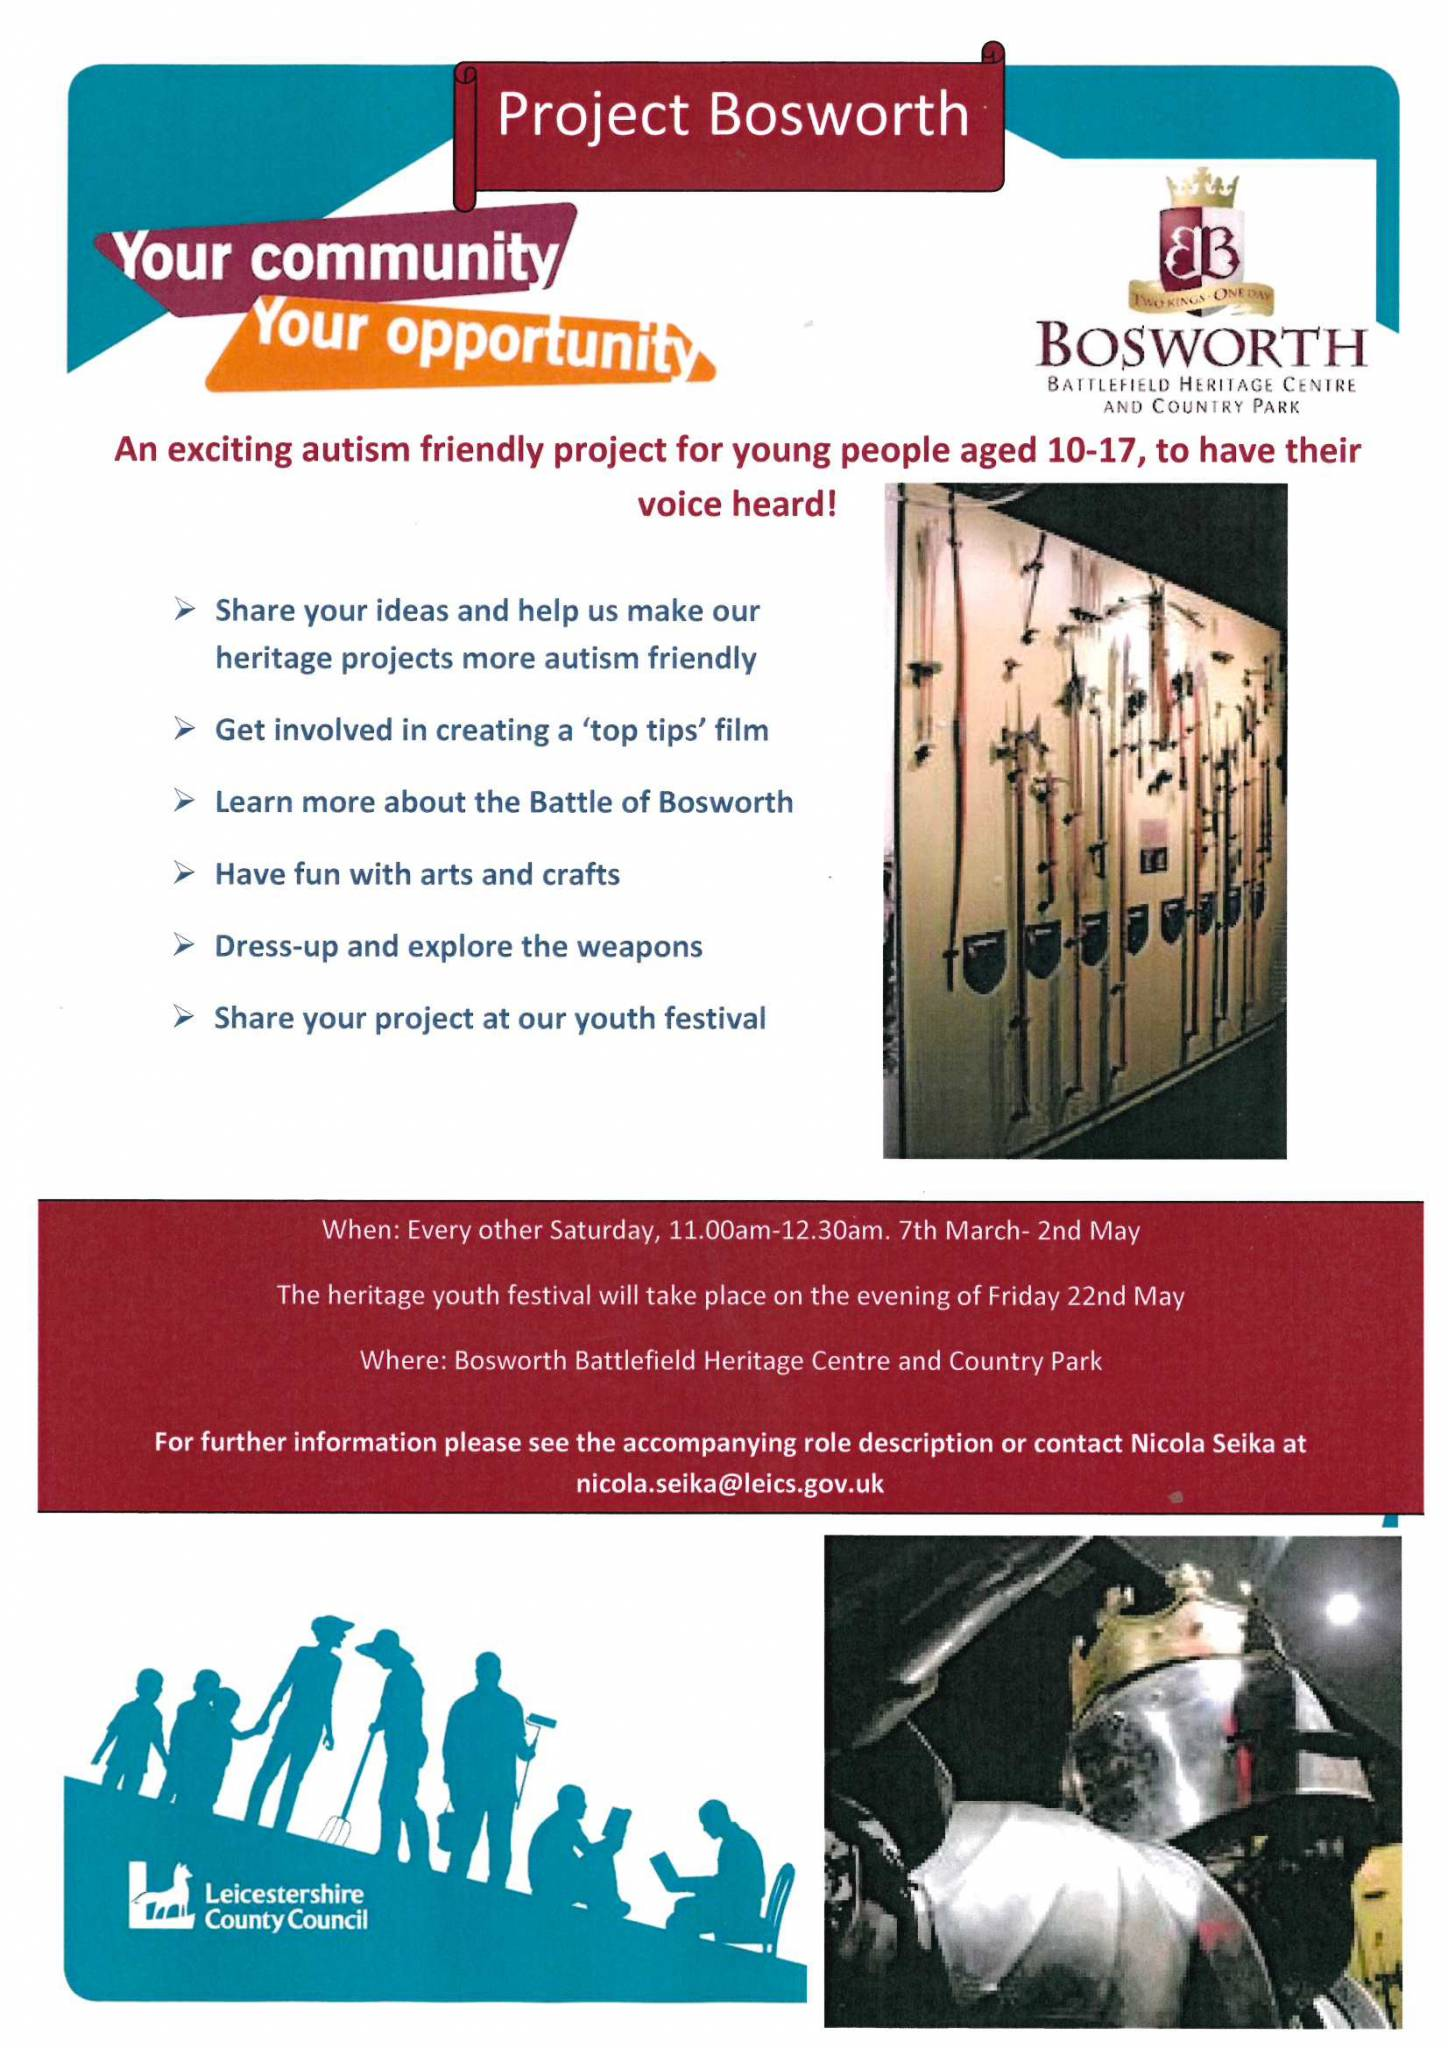 Project Bosworth - An Autism Friendly Project